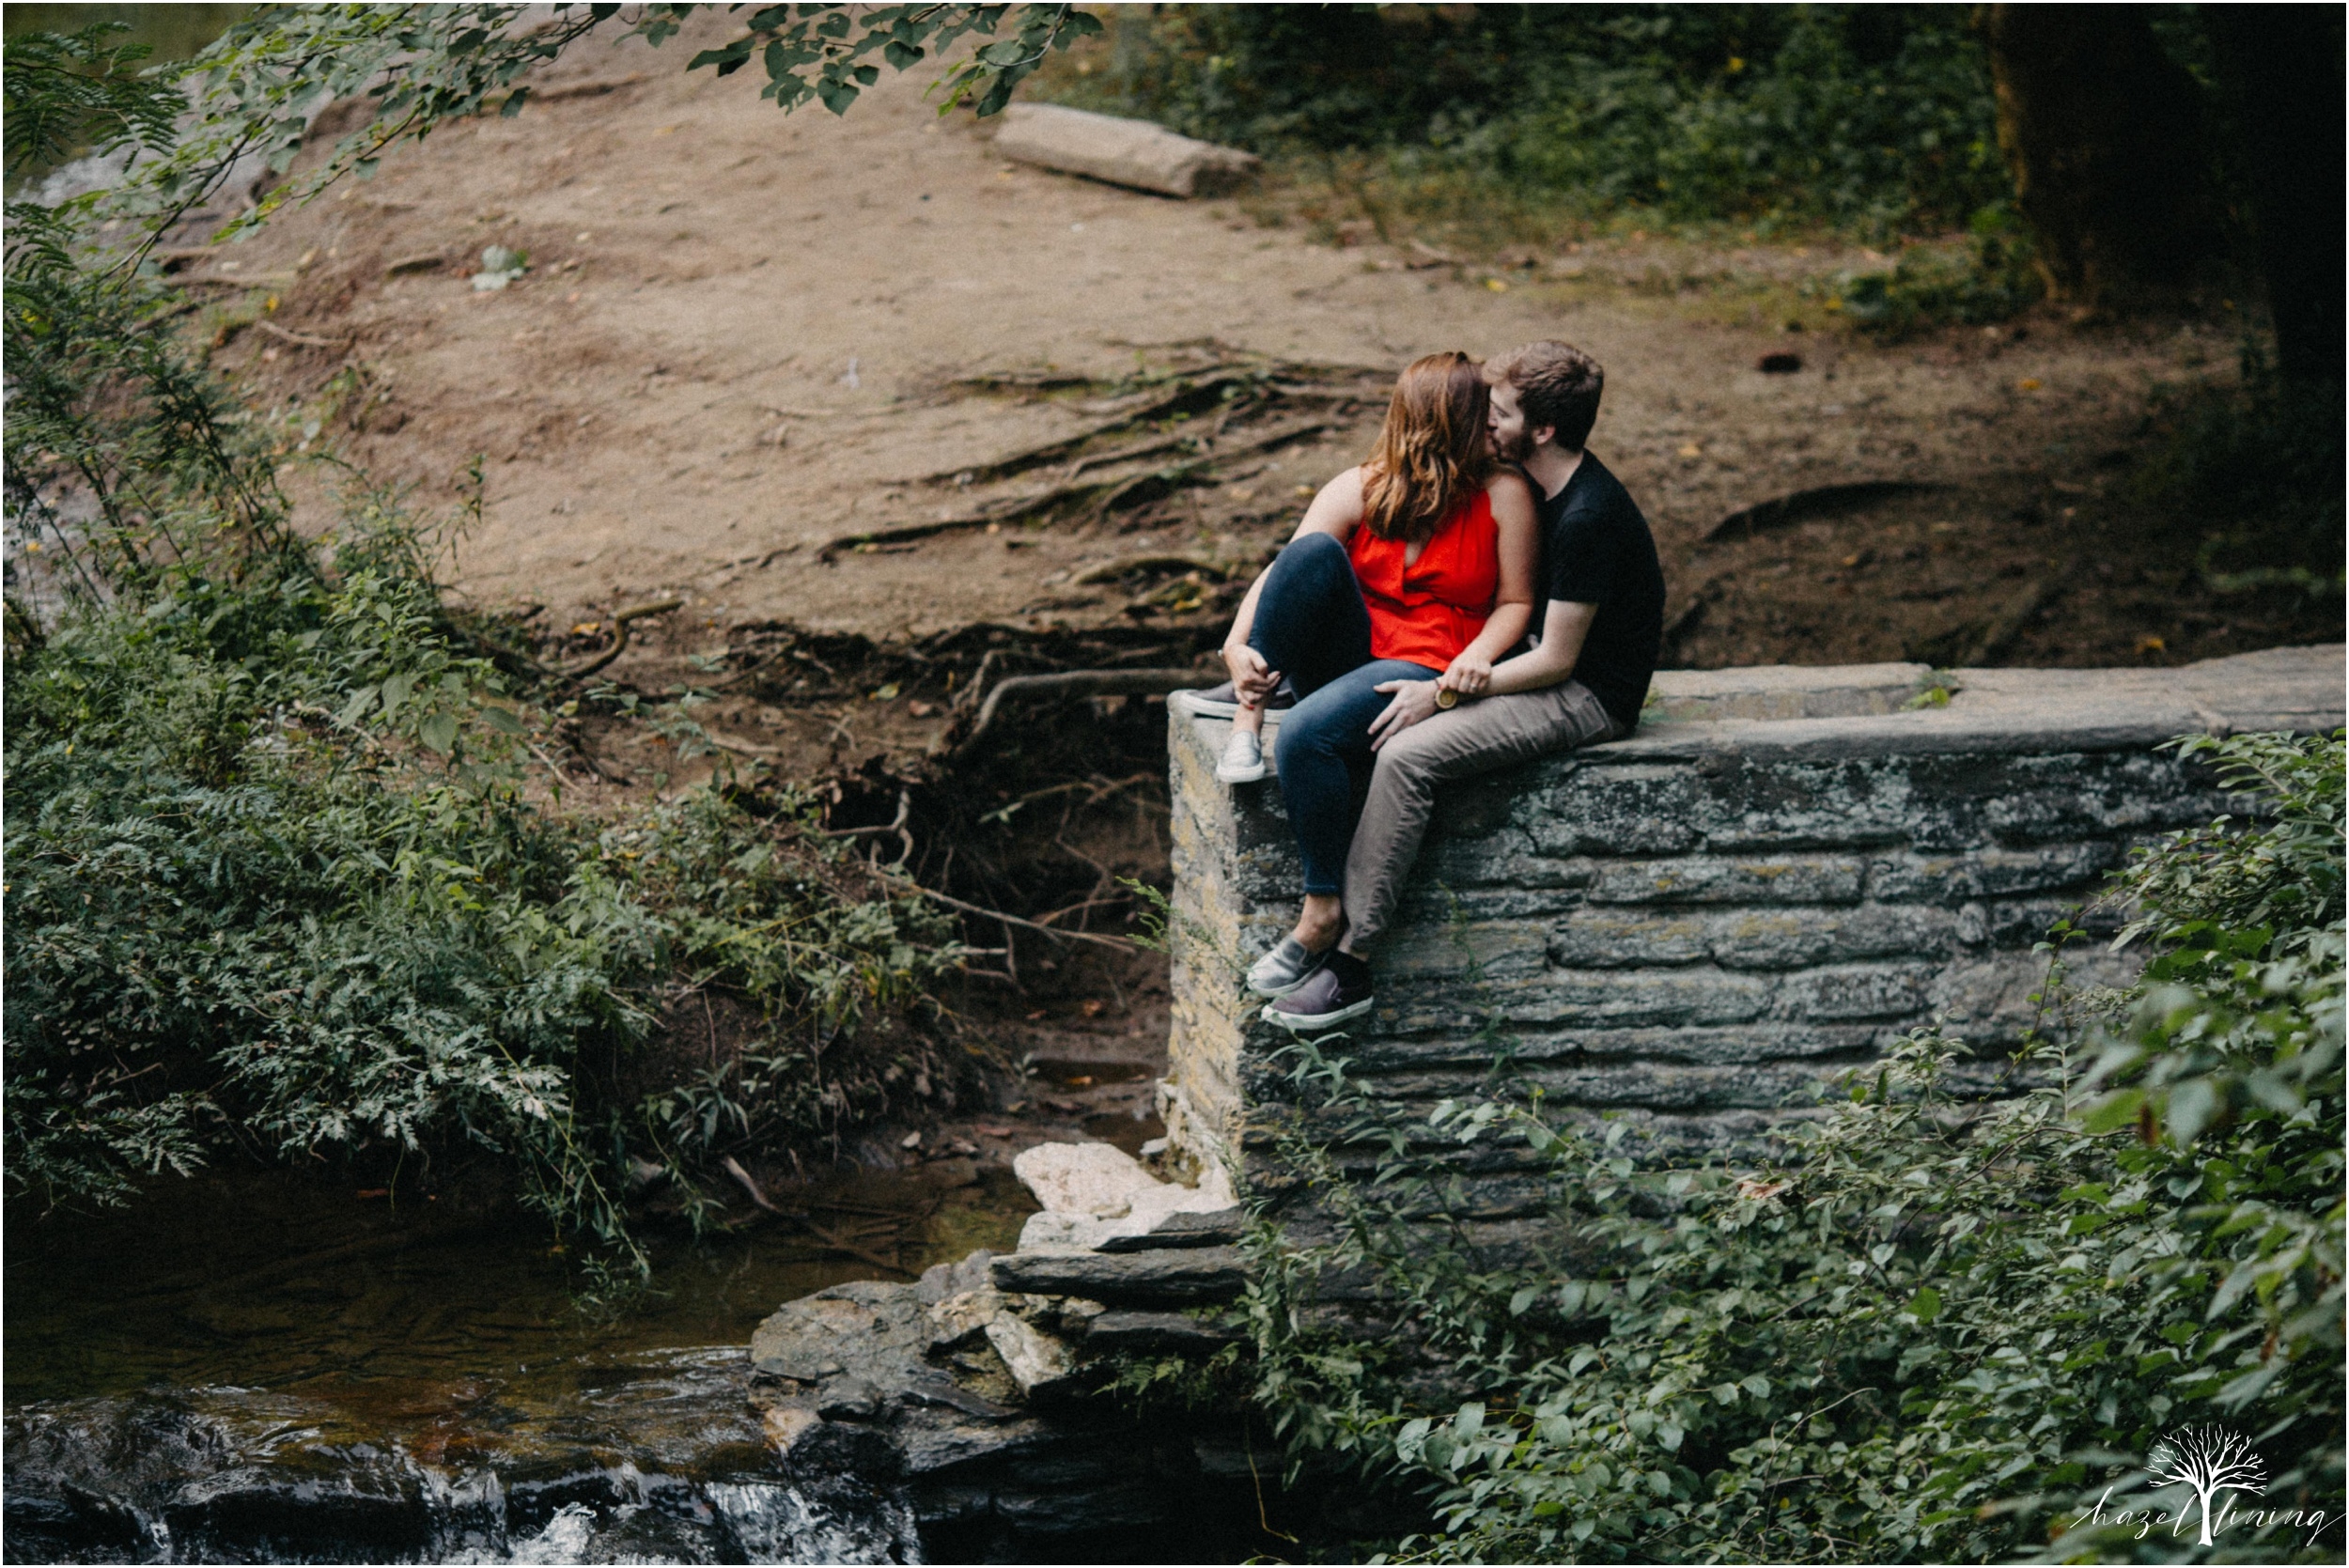 paige-kochey-chris-graham-valley-green-wissahickon-park-philadelphia-summer-engagement-session-hazel-lining-photography-destination-elopement-wedding-engagement-photography_0049.jpg